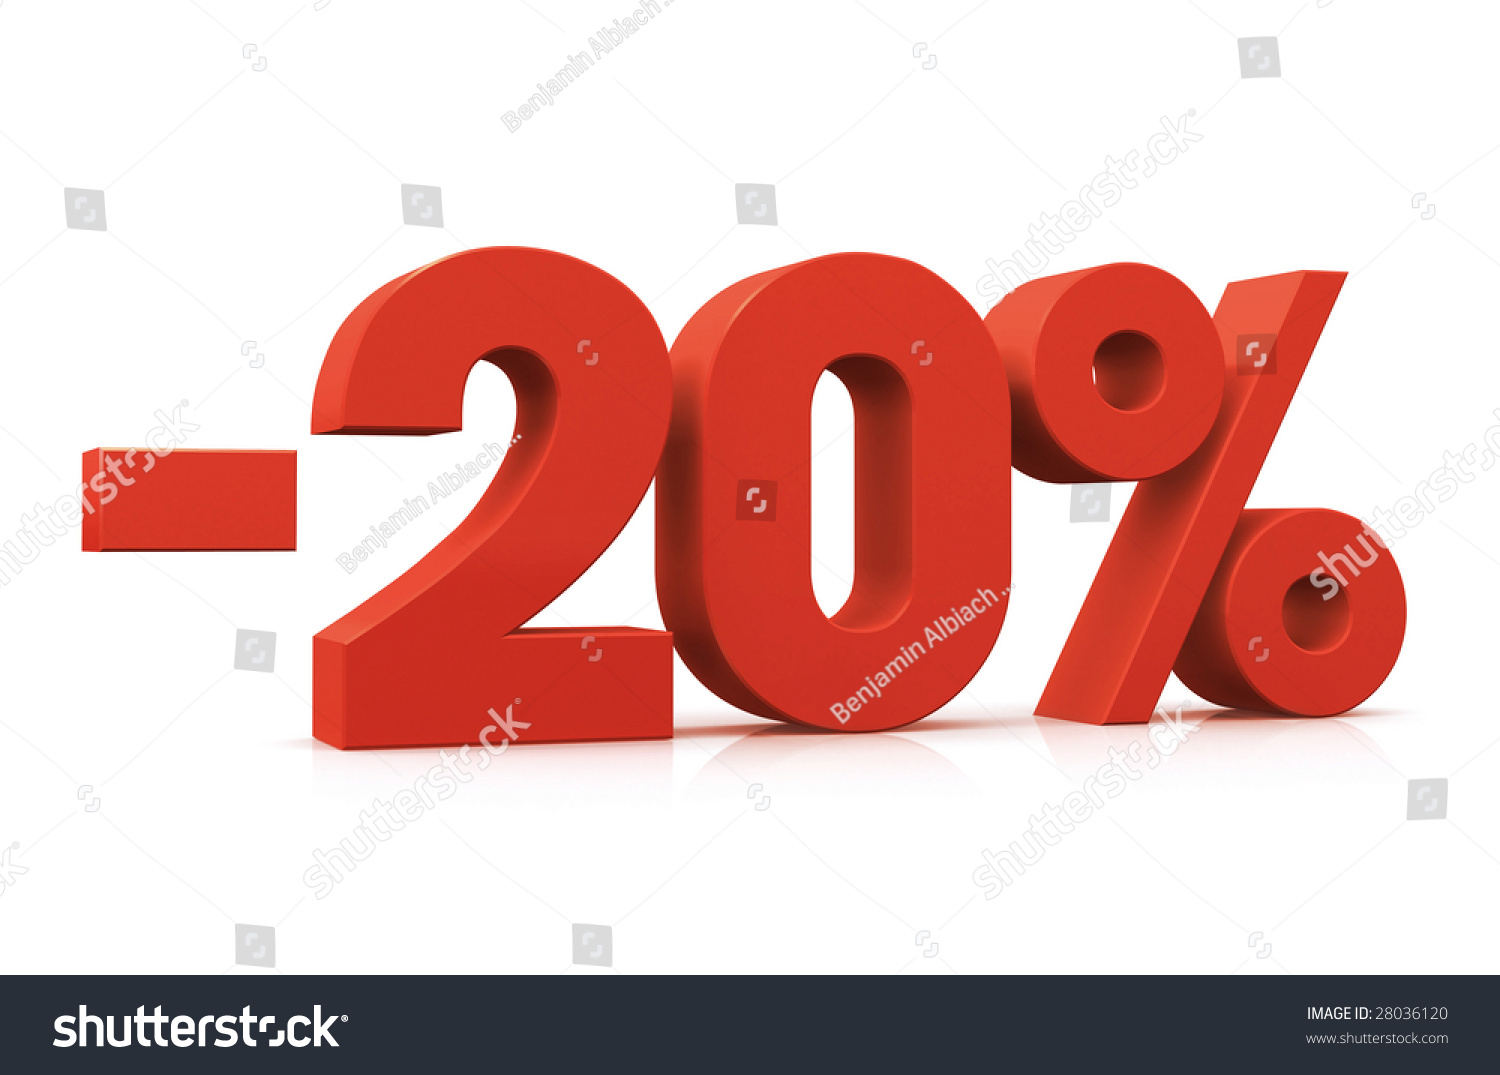 Percentage, -20% Stock Photo 28036120 : Shutterstock